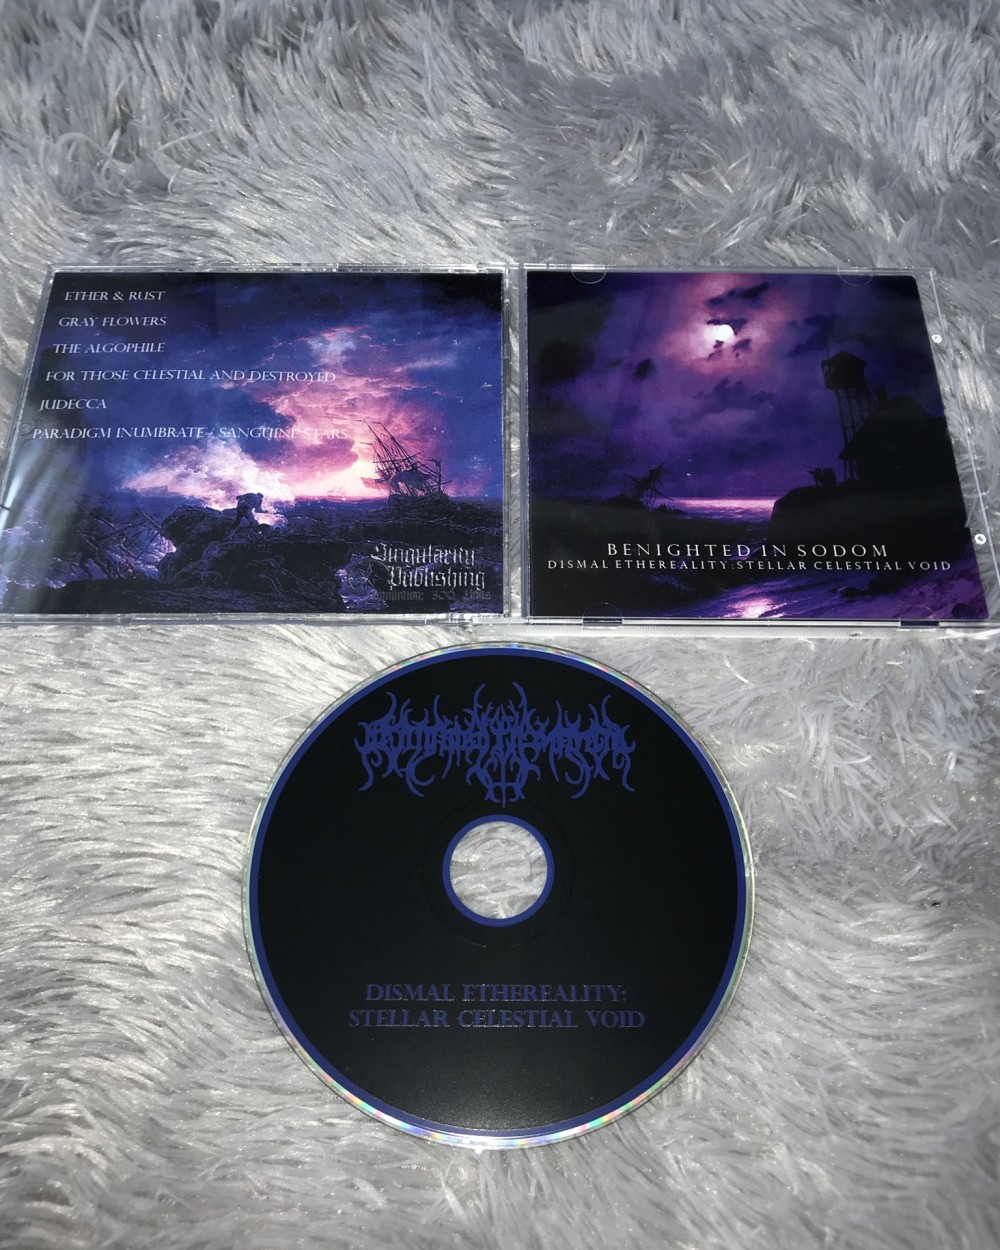 Benighted in Sodom - Dismal Ethereality: Stellar Celestial Void CD Photo